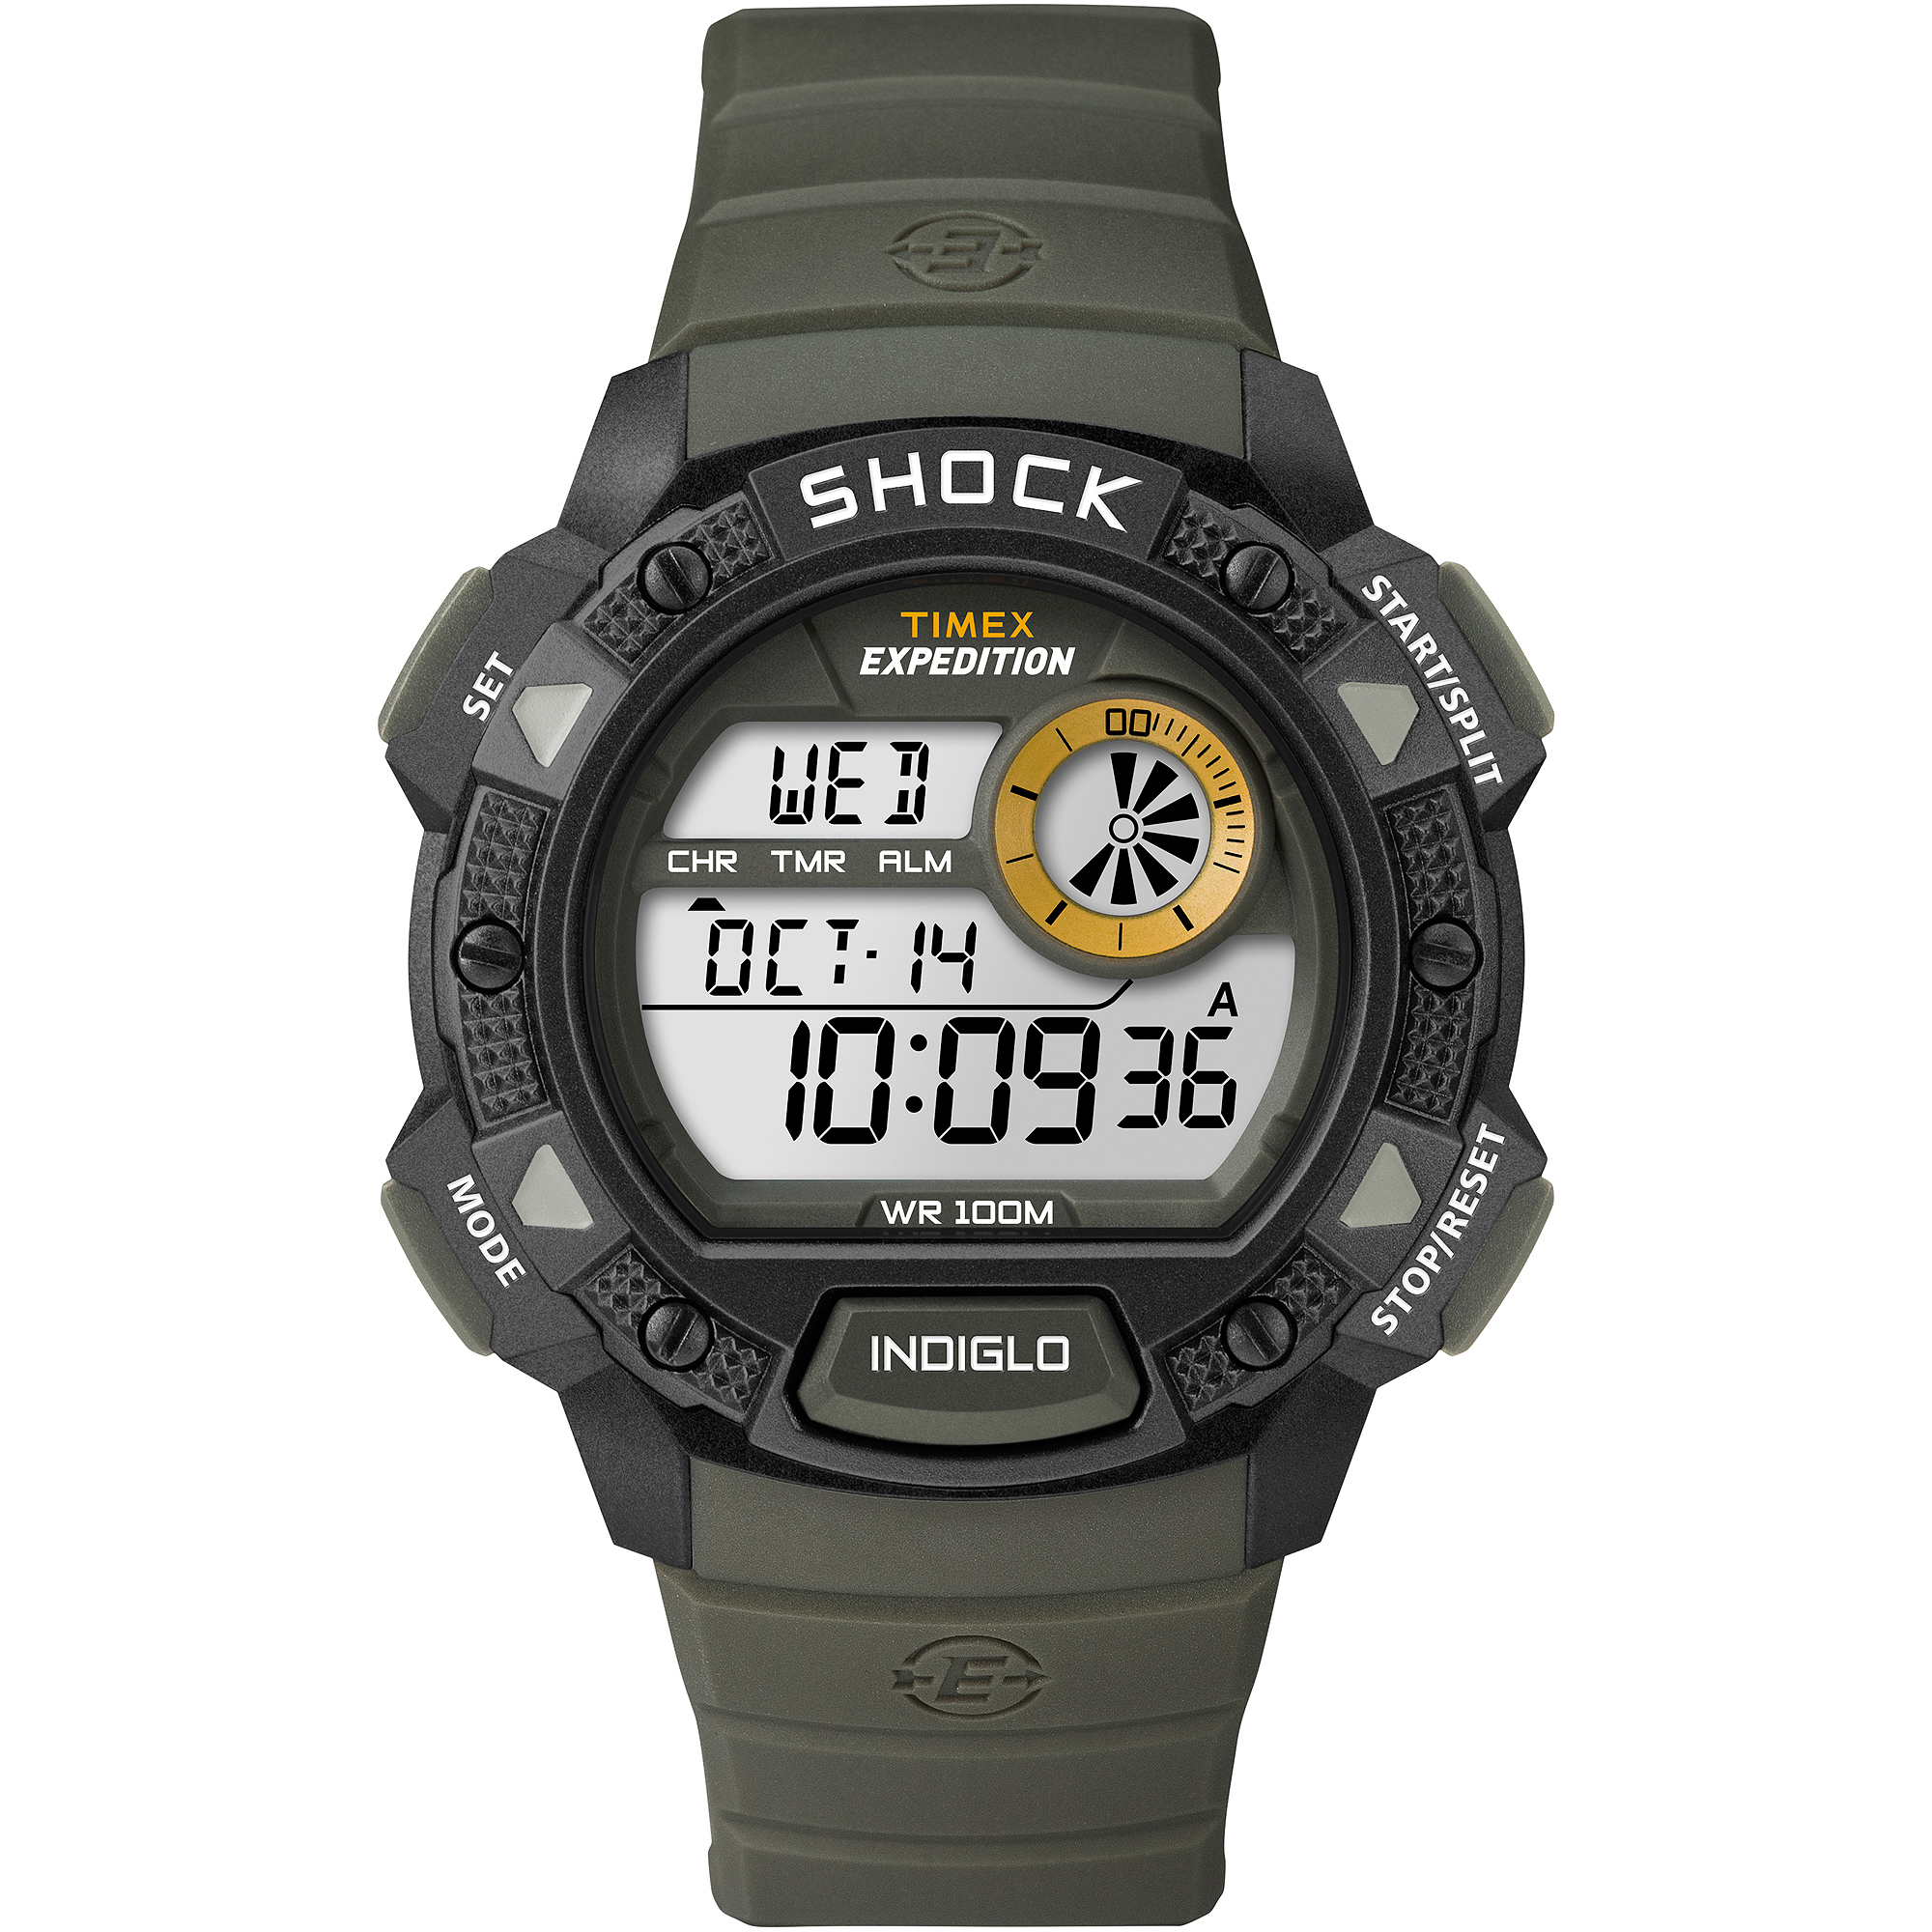 Timex Men's Expedition Base Shock Watch, Green Resin Strap by Timex